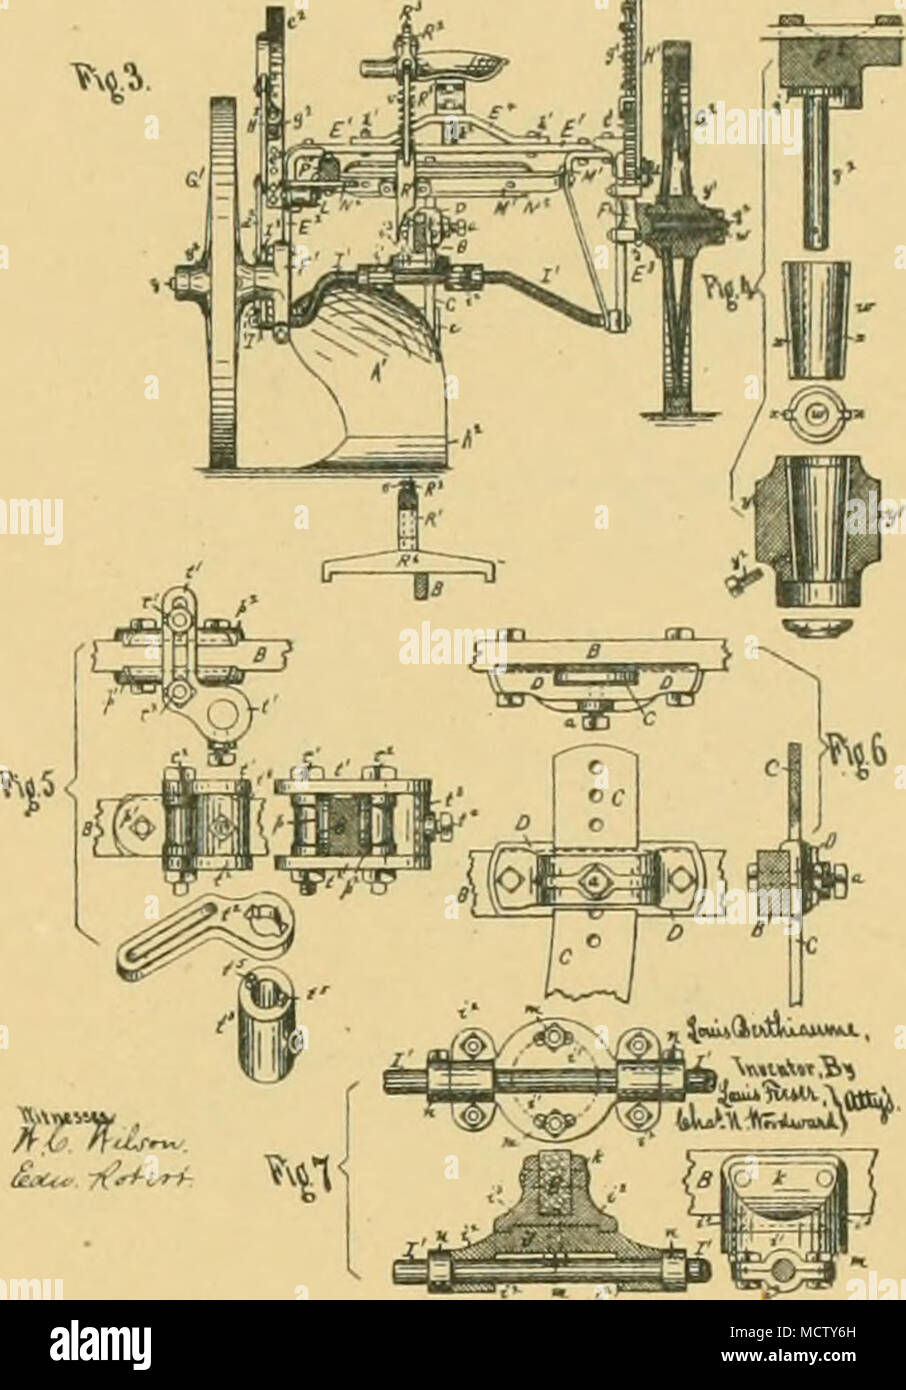 . r, J. SMITH Snlky-Plow. No. 225.538 Patented Mar. t6 . 1880 a. H WAEKEN. Solky-Plow. No. 225.668 Patented Mar. 16. 1880. - Stock Image